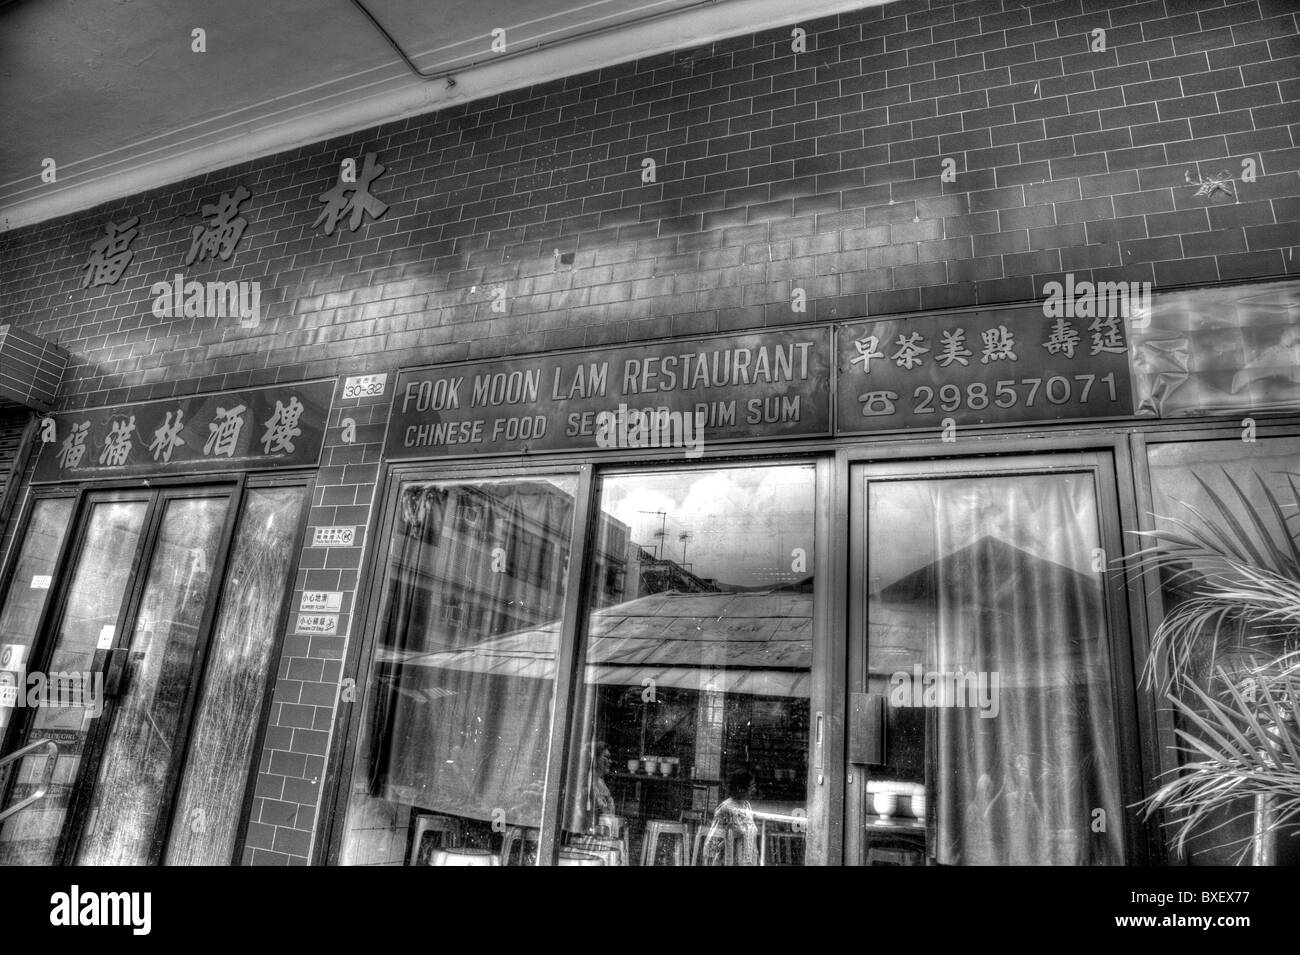 Detail of a small restaurant at Tai o on Lantau island in hdr and black and white - Stock Image